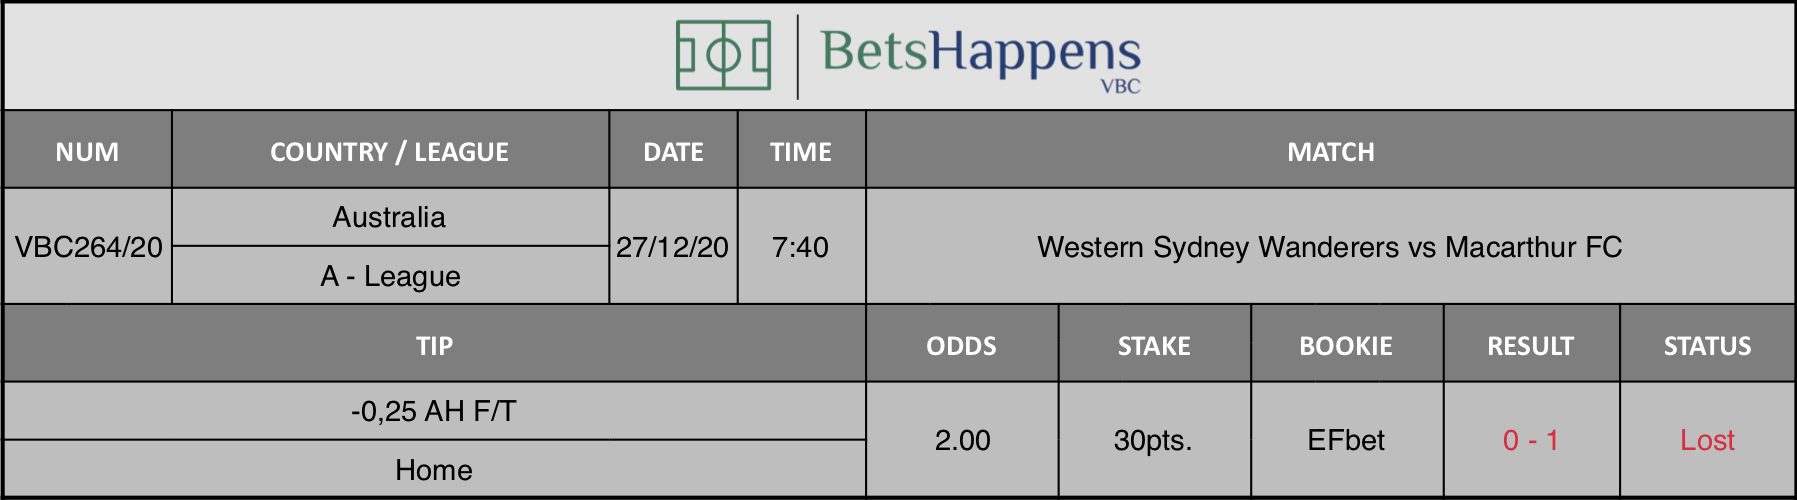 Results of our tip for the Western Sydney Wanderers vs Macarthur FC match where -0,25 AH F/T Home is recommended.